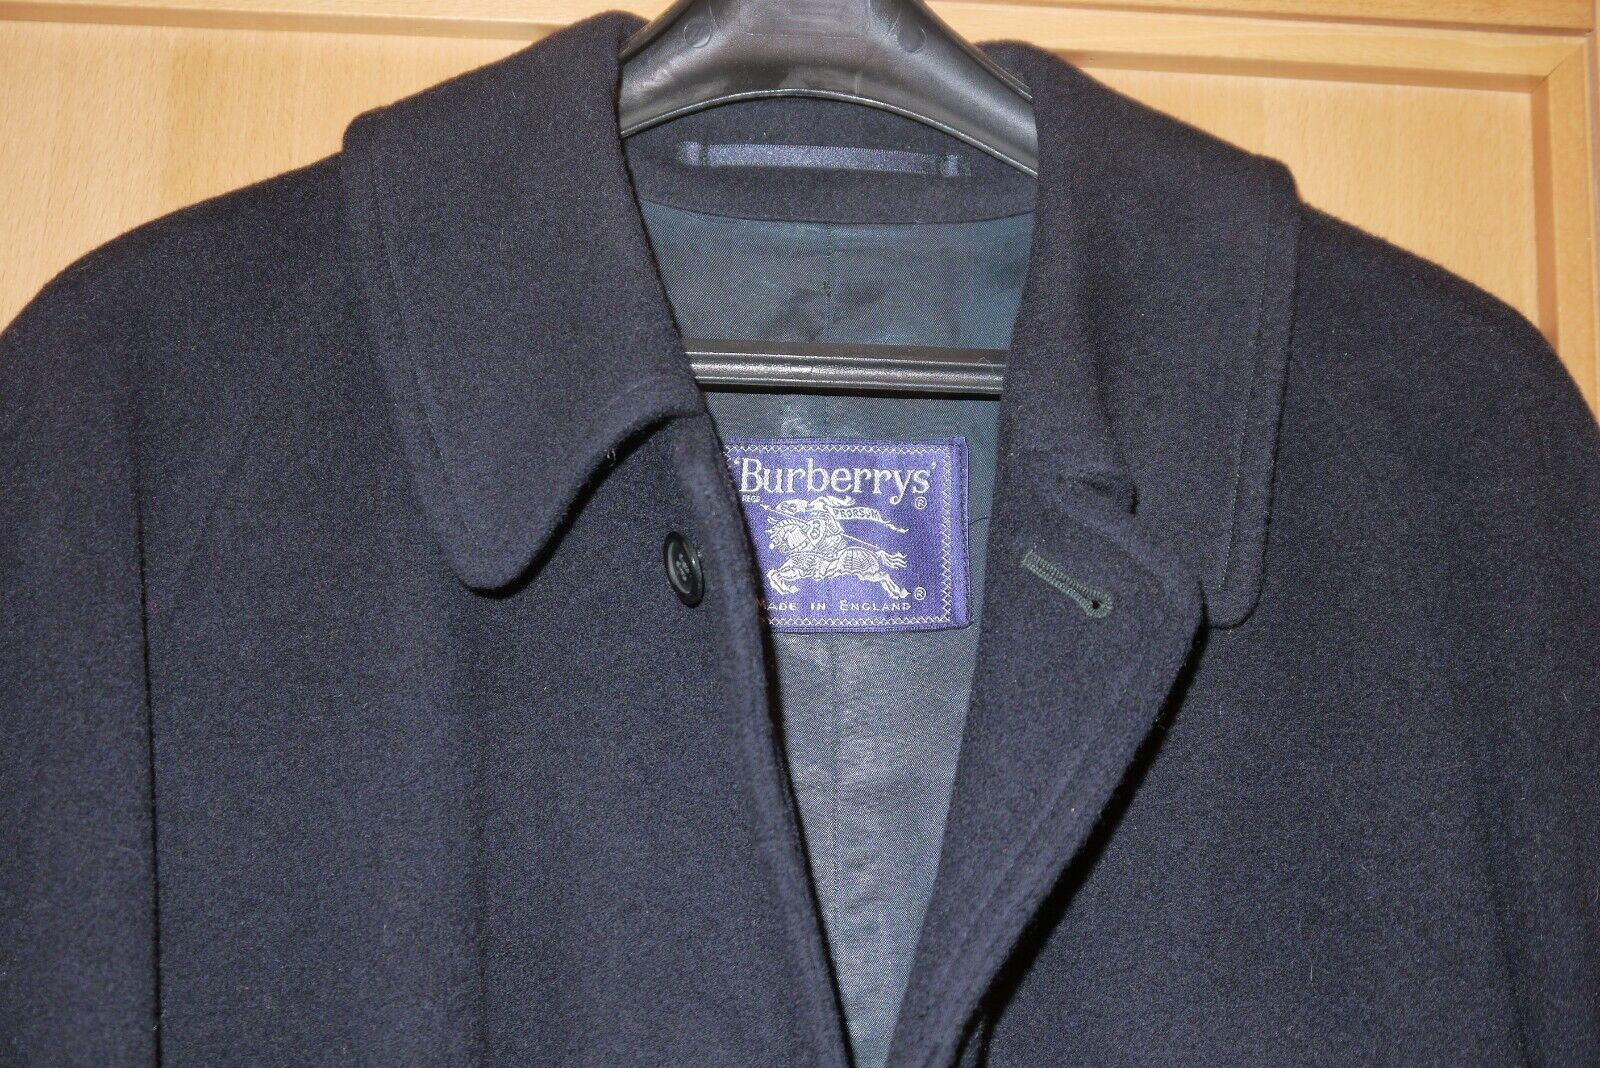 Vintage manteau trench burberrys london